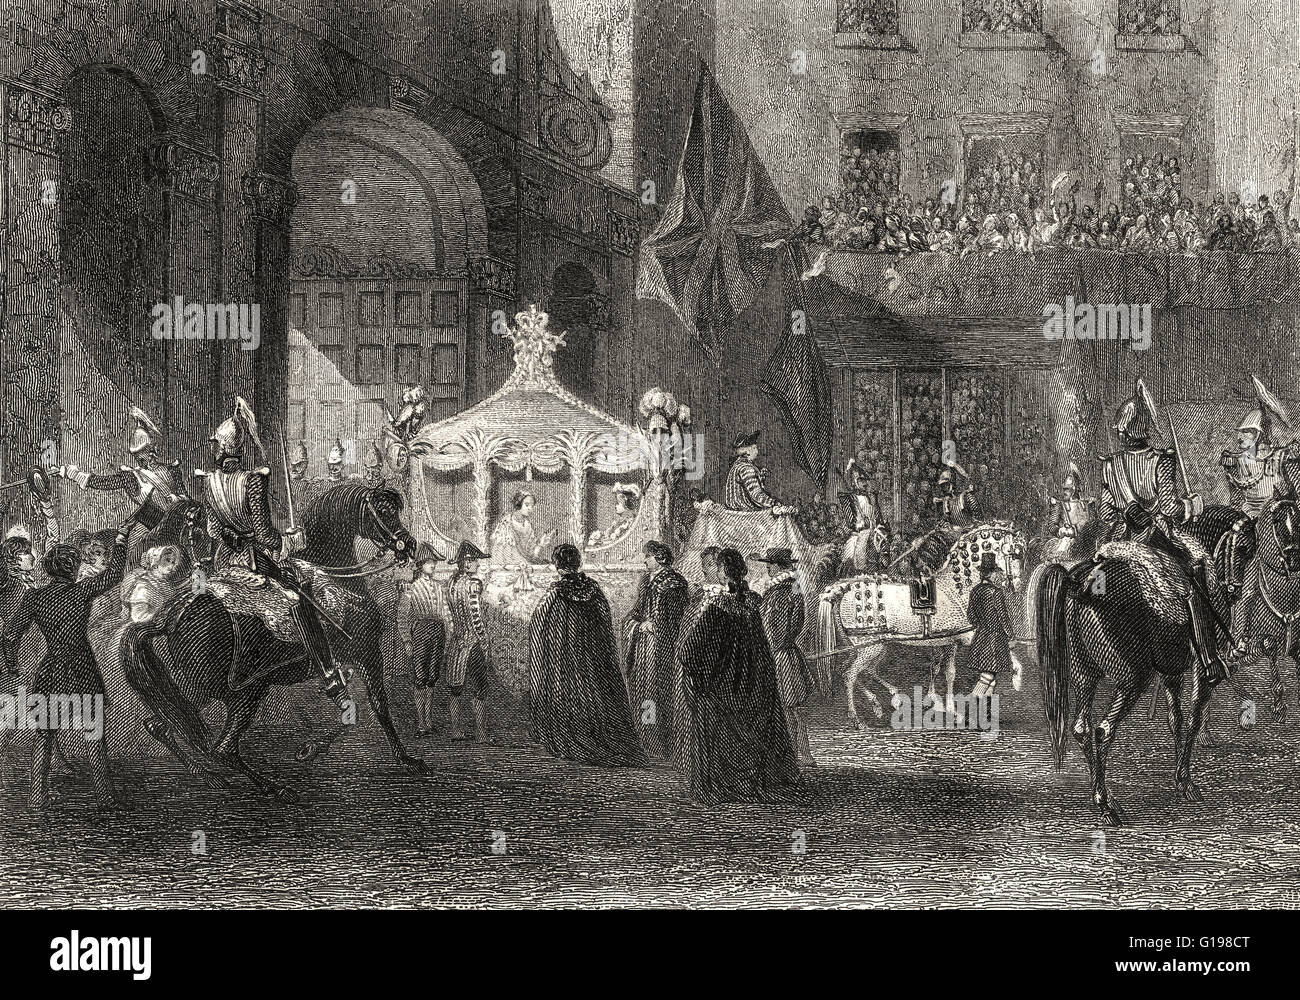 Queen Victoria's first visit to the City of London as queen, Temple Bar ceremony, 1837 - Stock Image